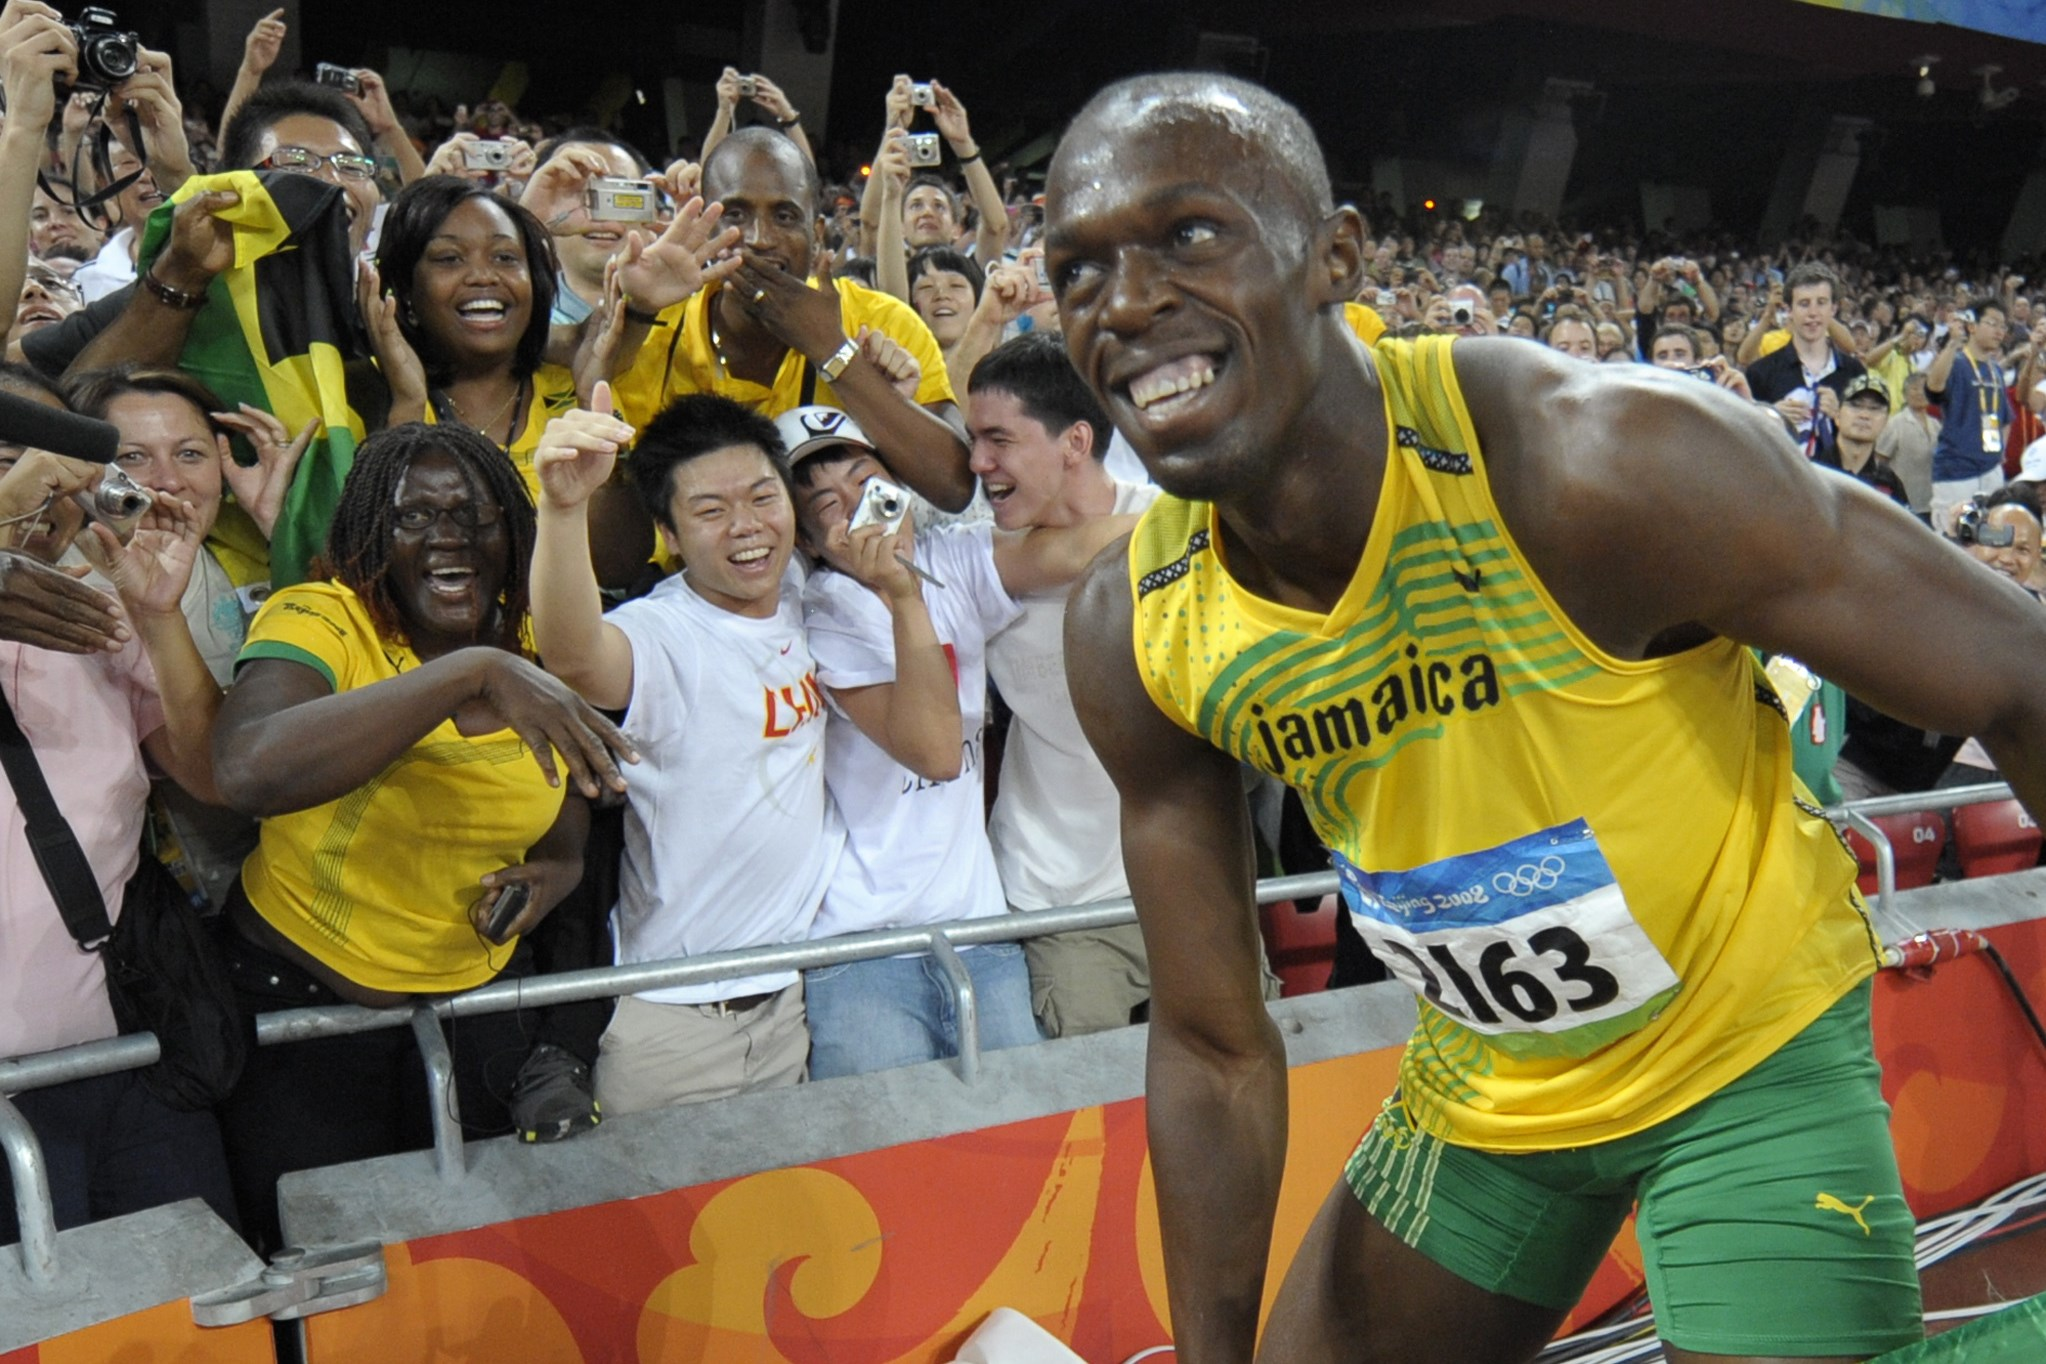 FILE - In this Aug. 16, 2008, file photo, Usain Bolt of Jamaica smiles at cheering spectators after winning the men's 100-meter final with a world record in the National Stadium at the Beijing 2008 Olympics in Beijing. Since he coasted to the 100-meter fi